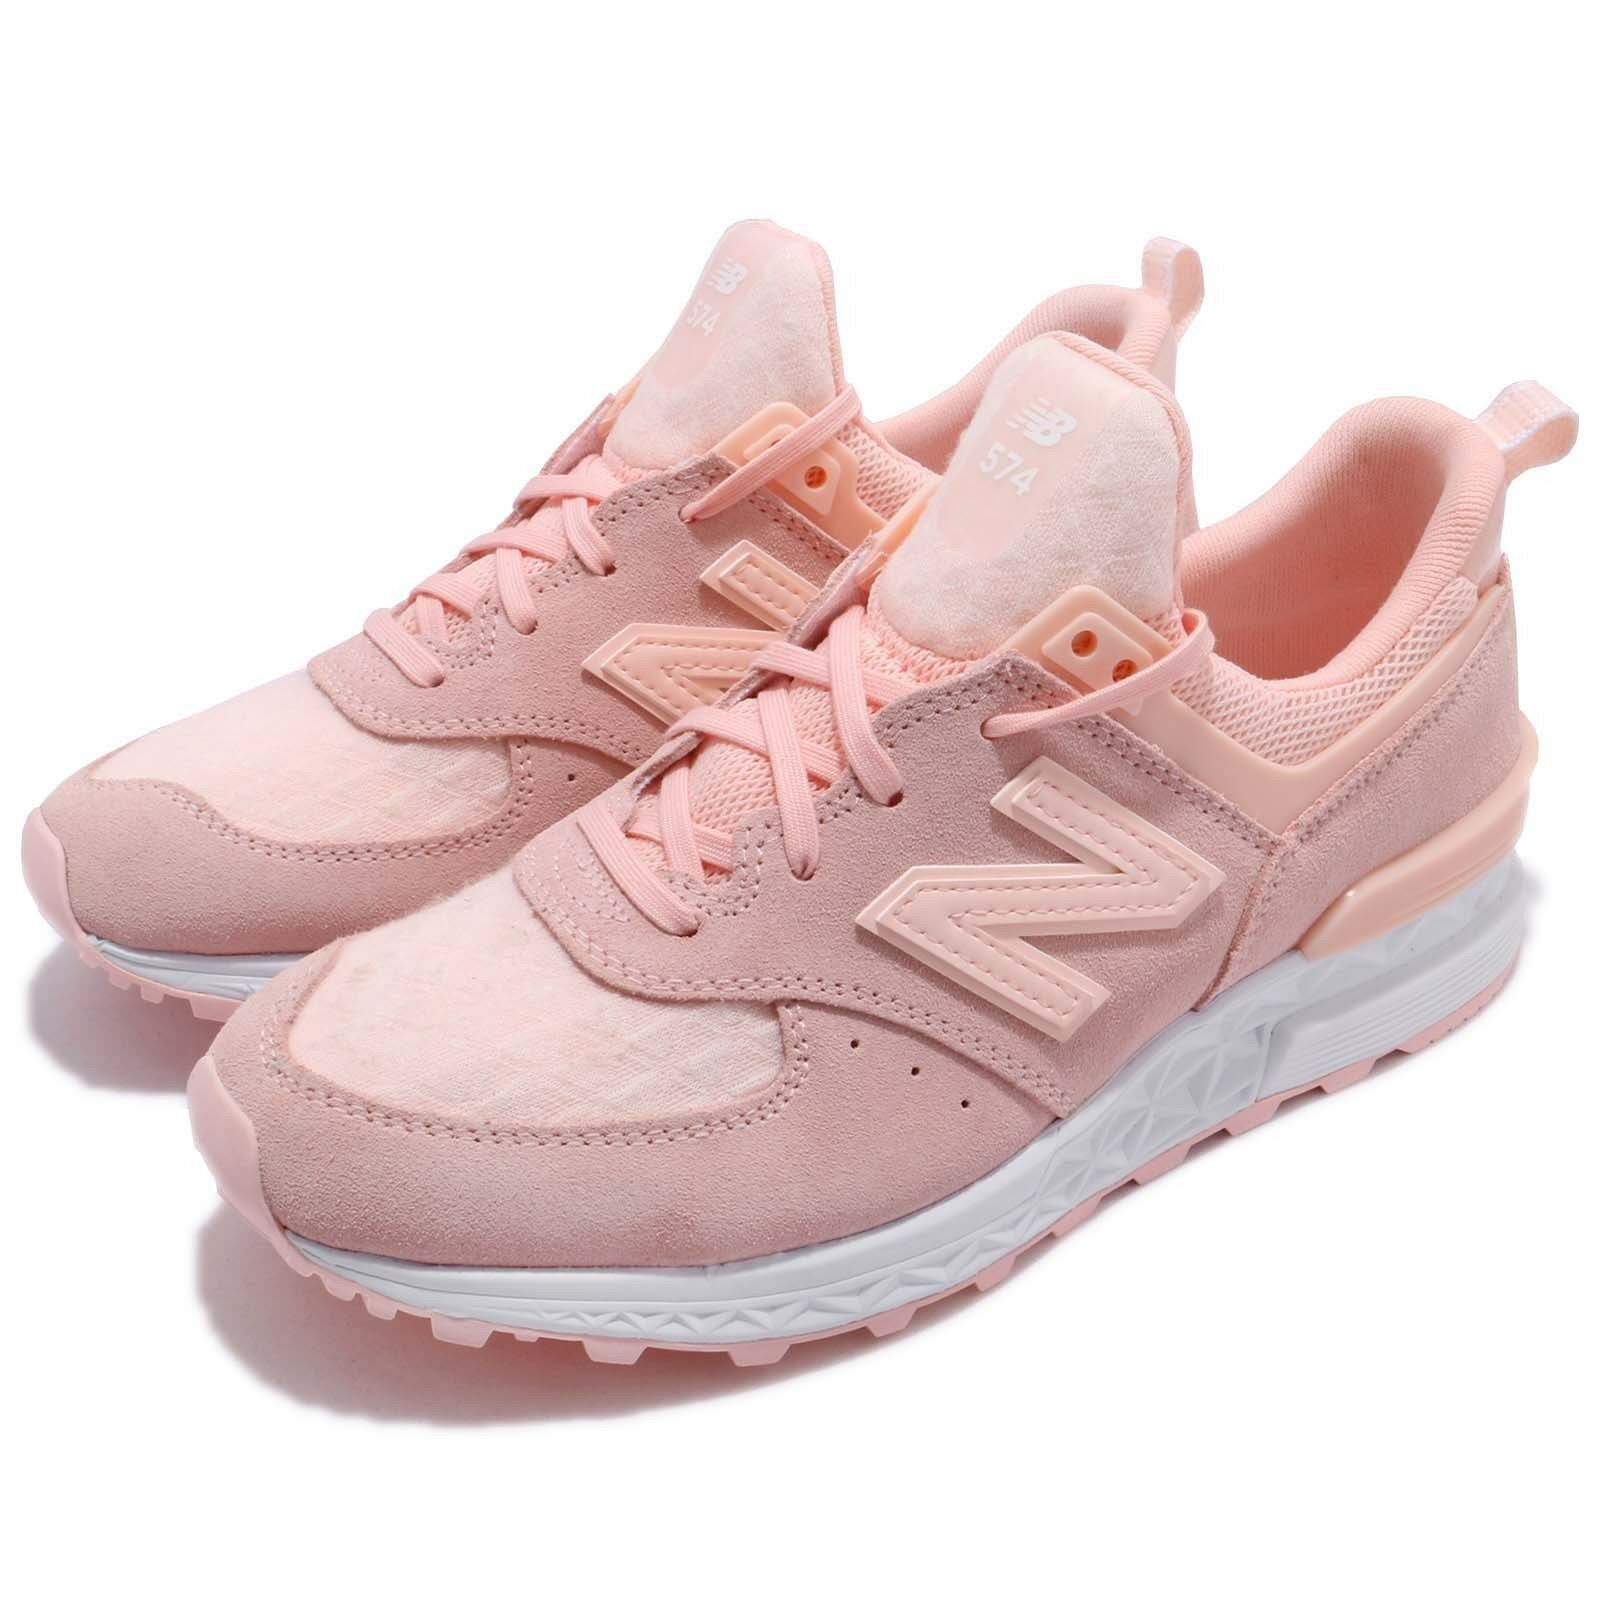 New Balance WS574SNCB Suede Pink White Women Running shoes Sneakers  WS574SNCB  fashion brands